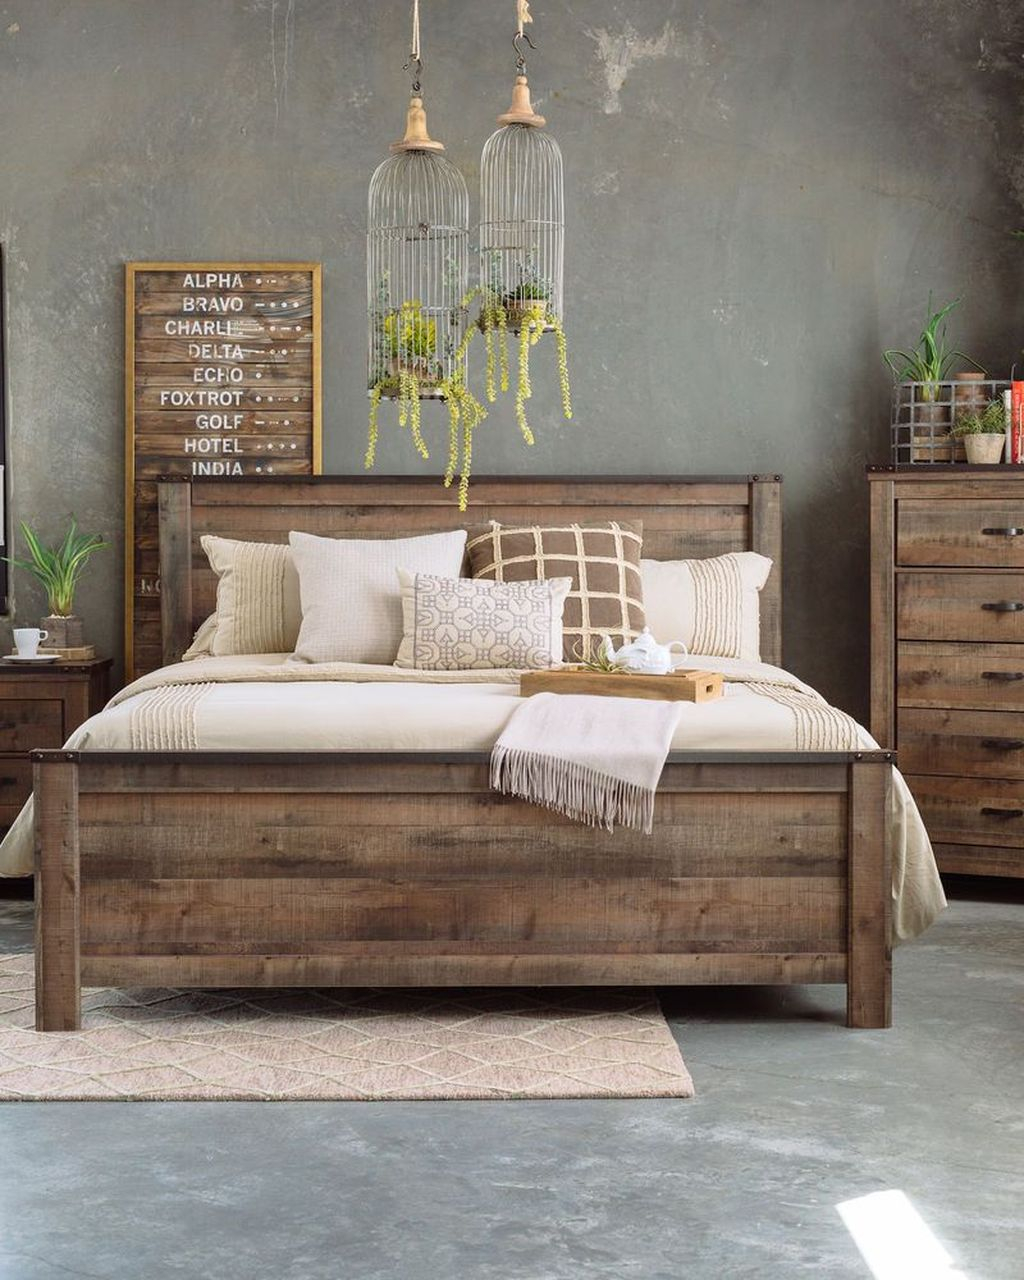 42 Romantic Rustic Farmhouse Bedroom Design And Decorations